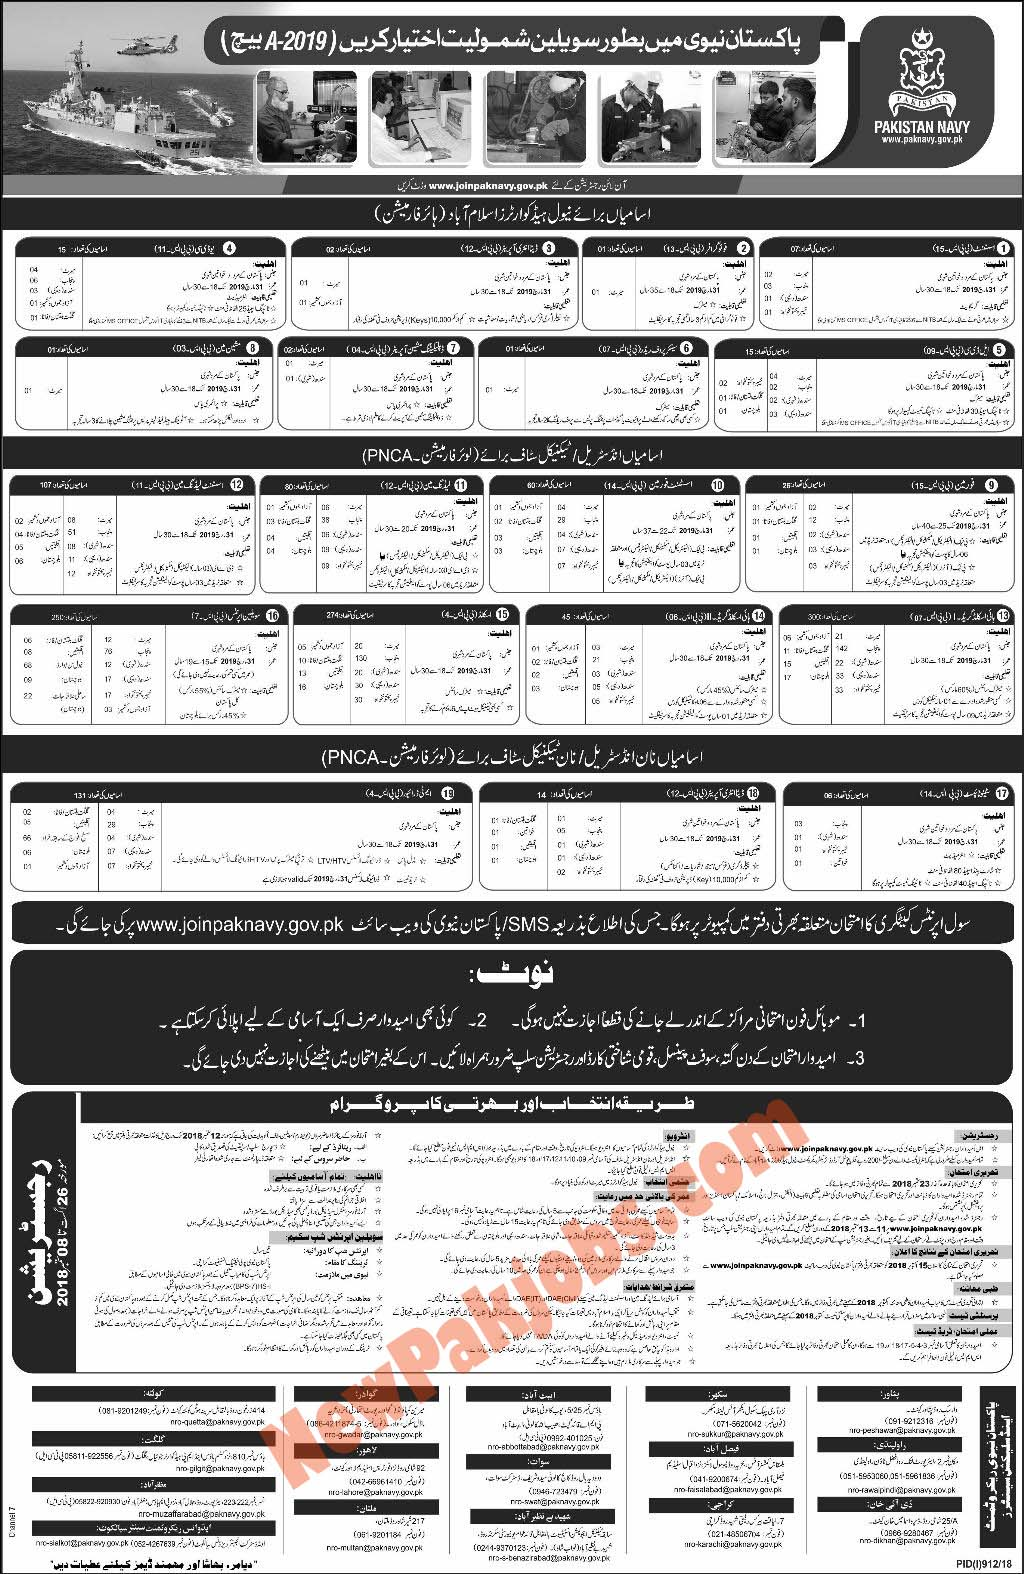 Join Pak Navy as Civilian Batch A 2019 September newpakjobs.com